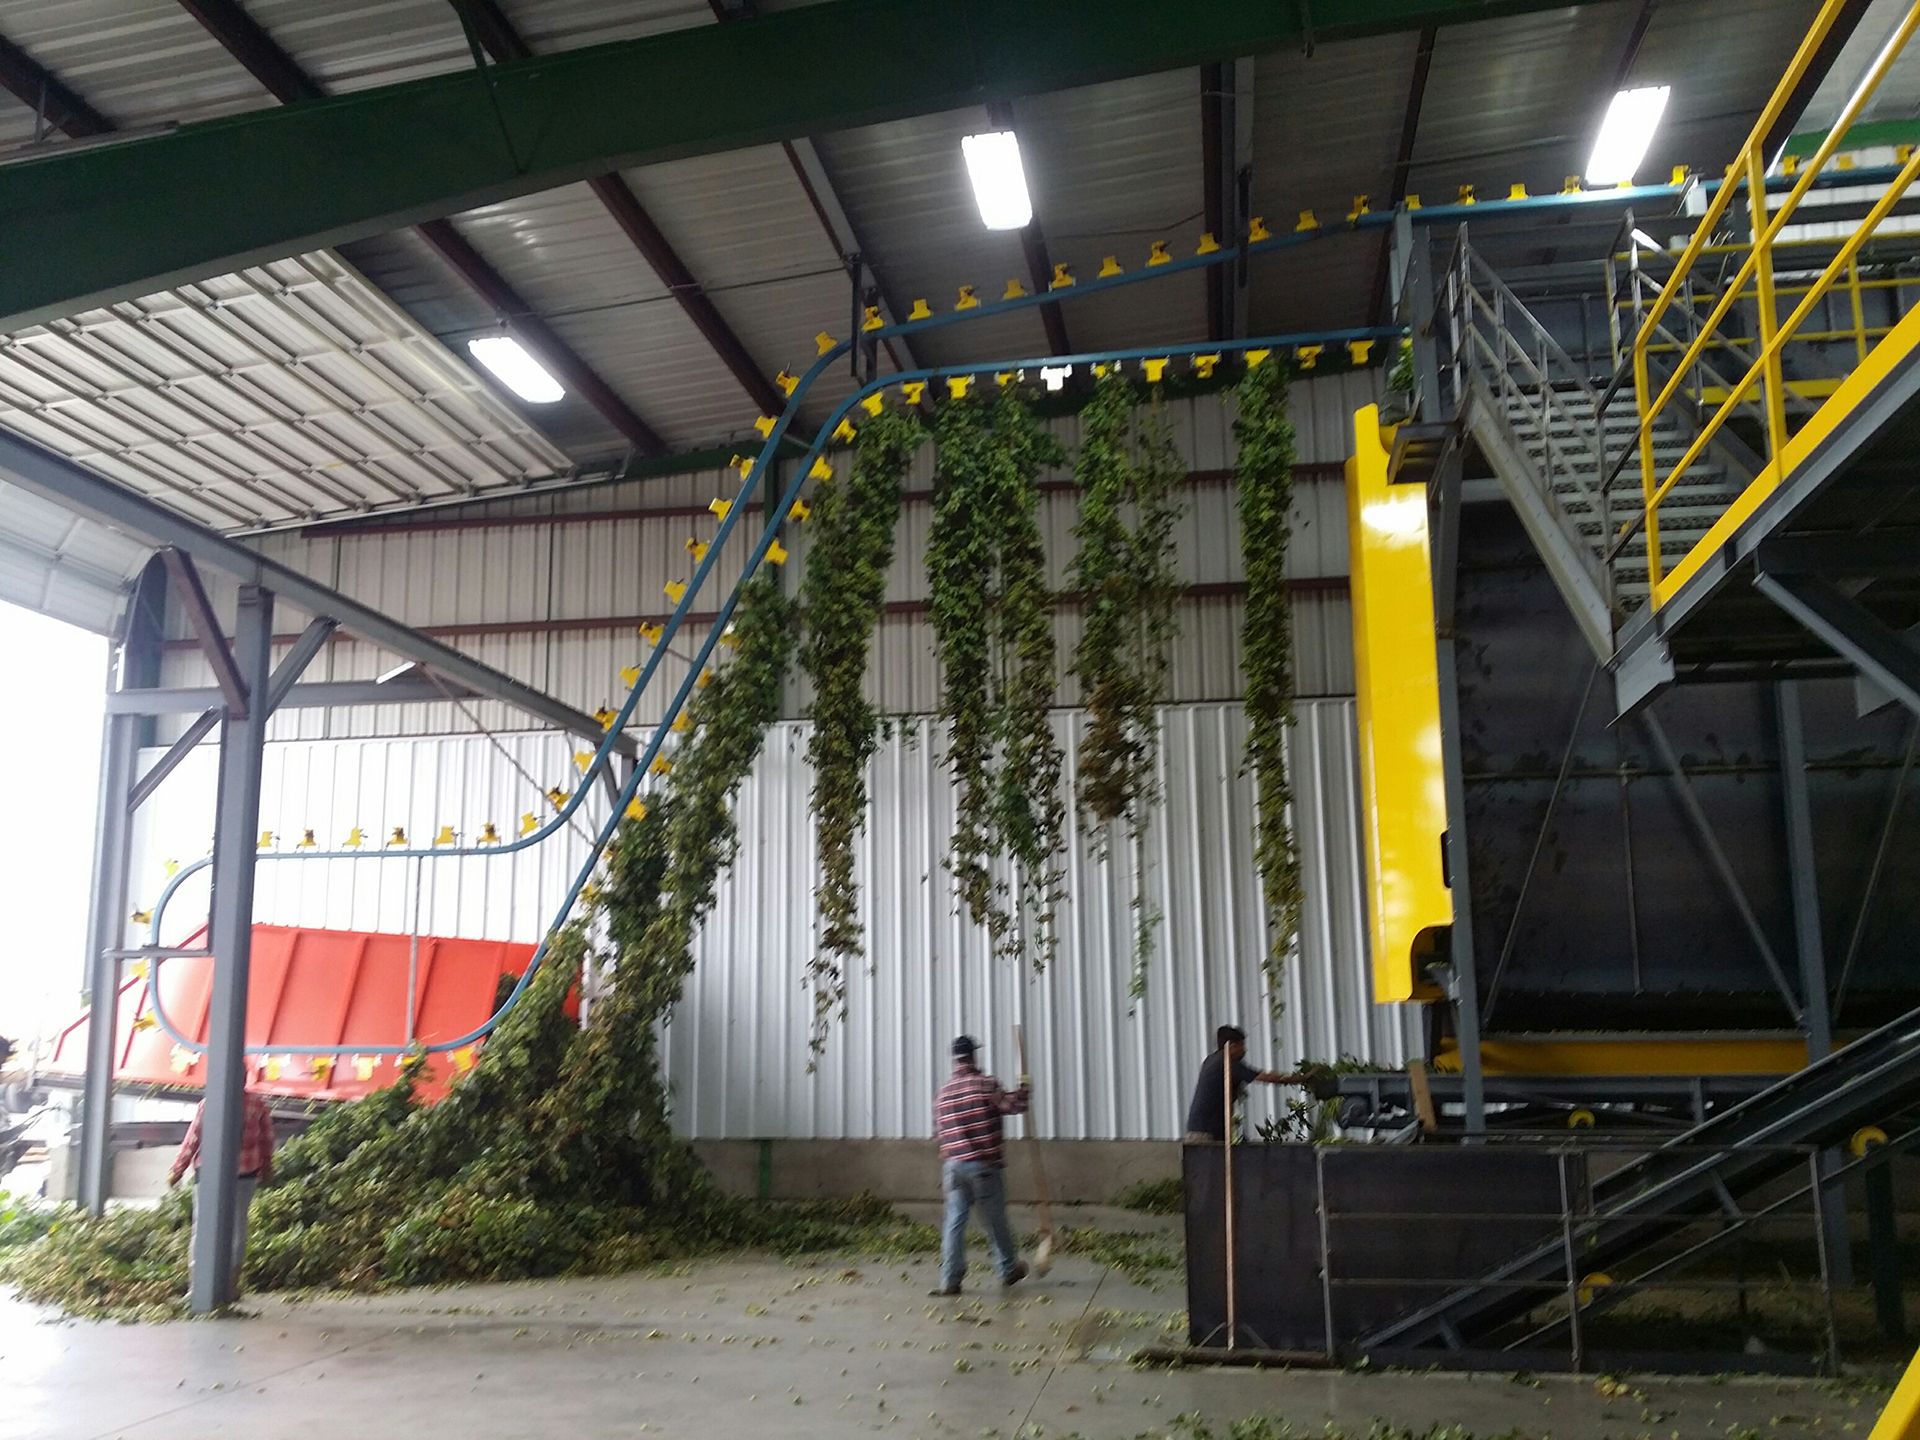 Working on indoor hop system